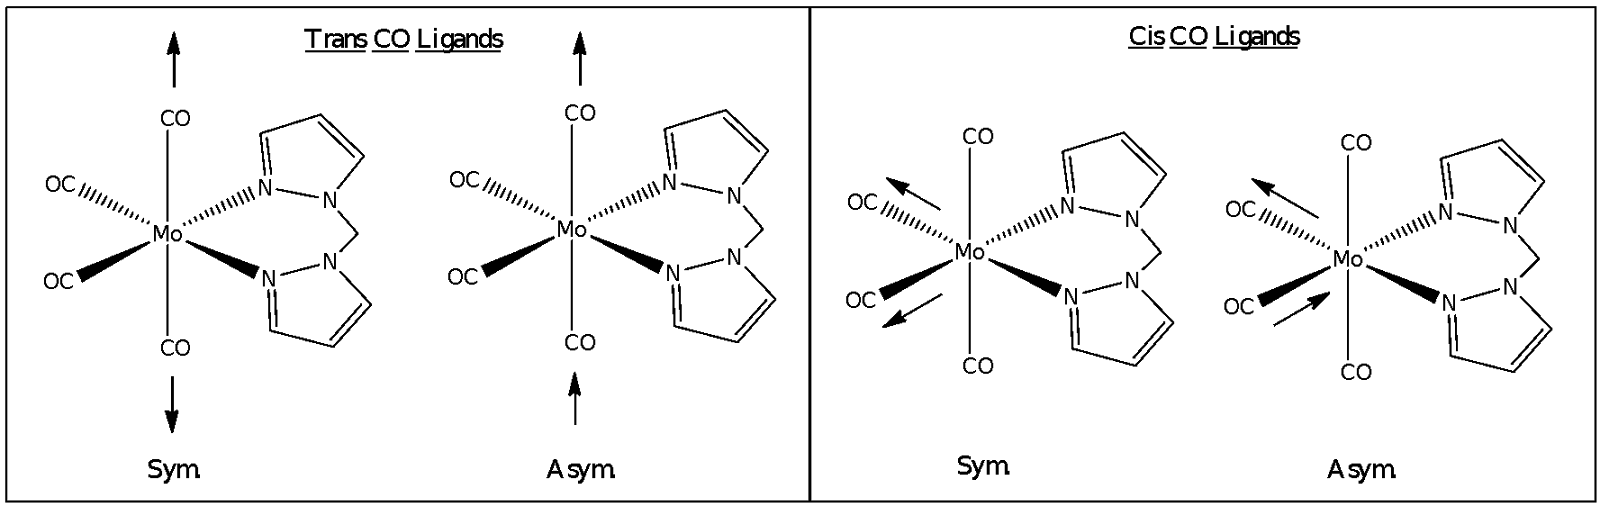 substitution reactions of molybdenum hexacarbonyl and